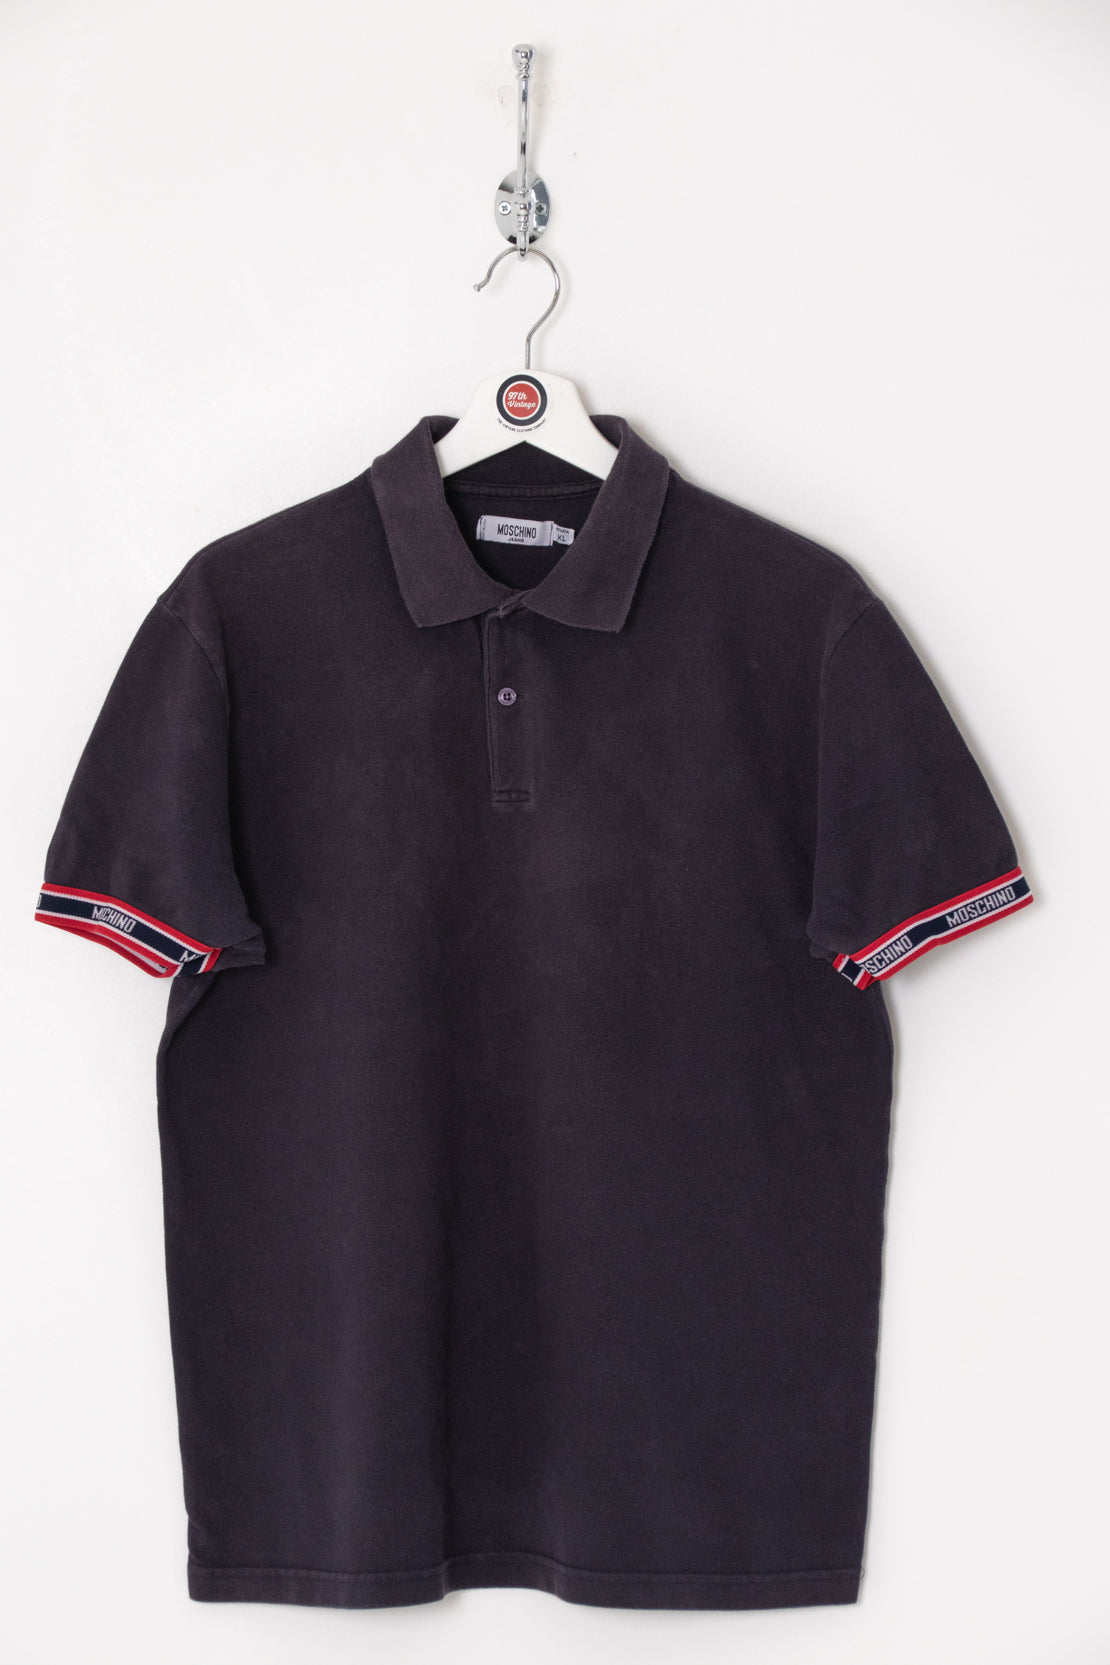 Moschino Polo Shirt (L)